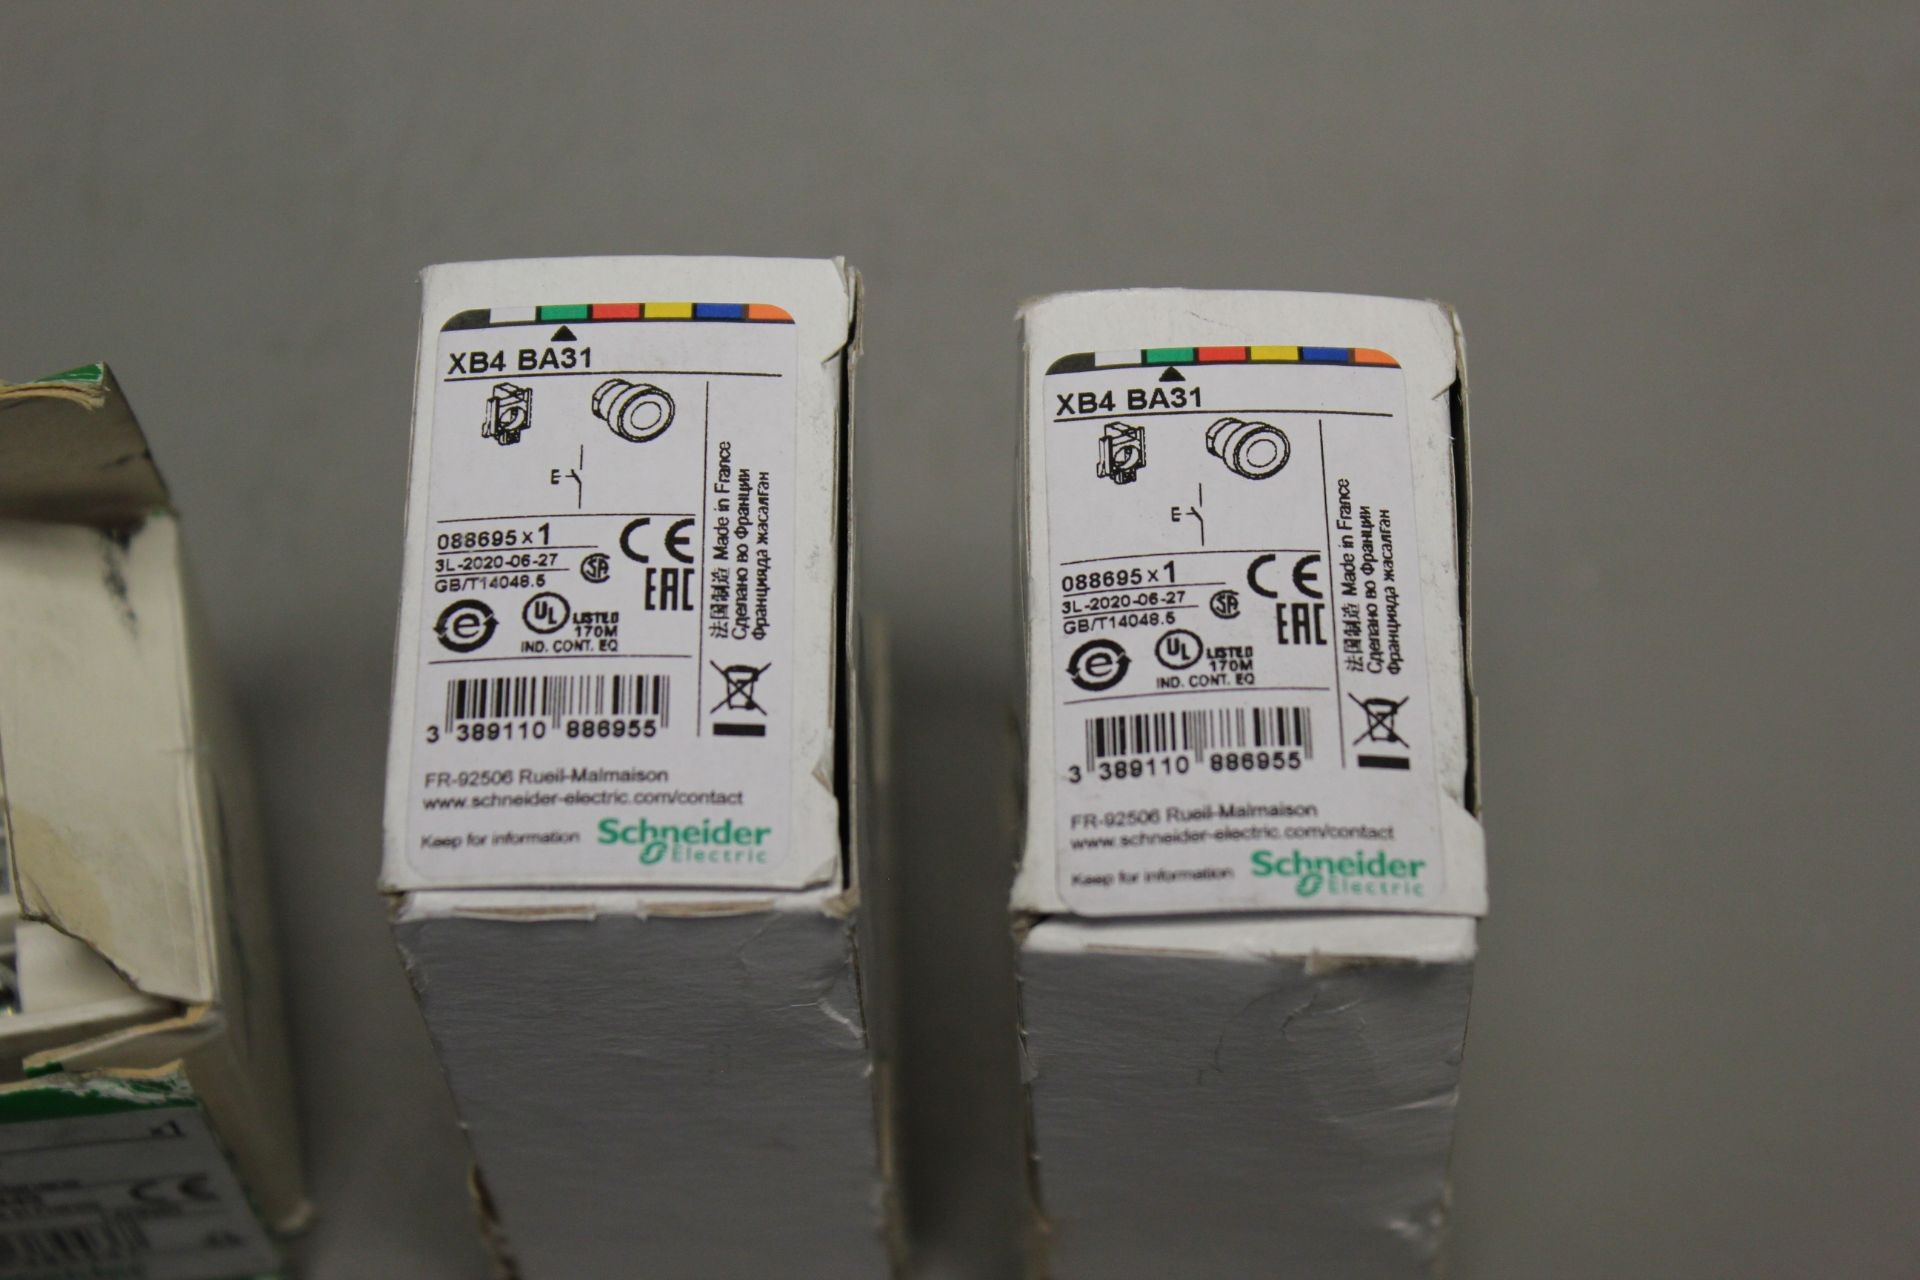 LOT OF NEW SCHNEIDER ELECTRIC PARTS - Image 2 of 3